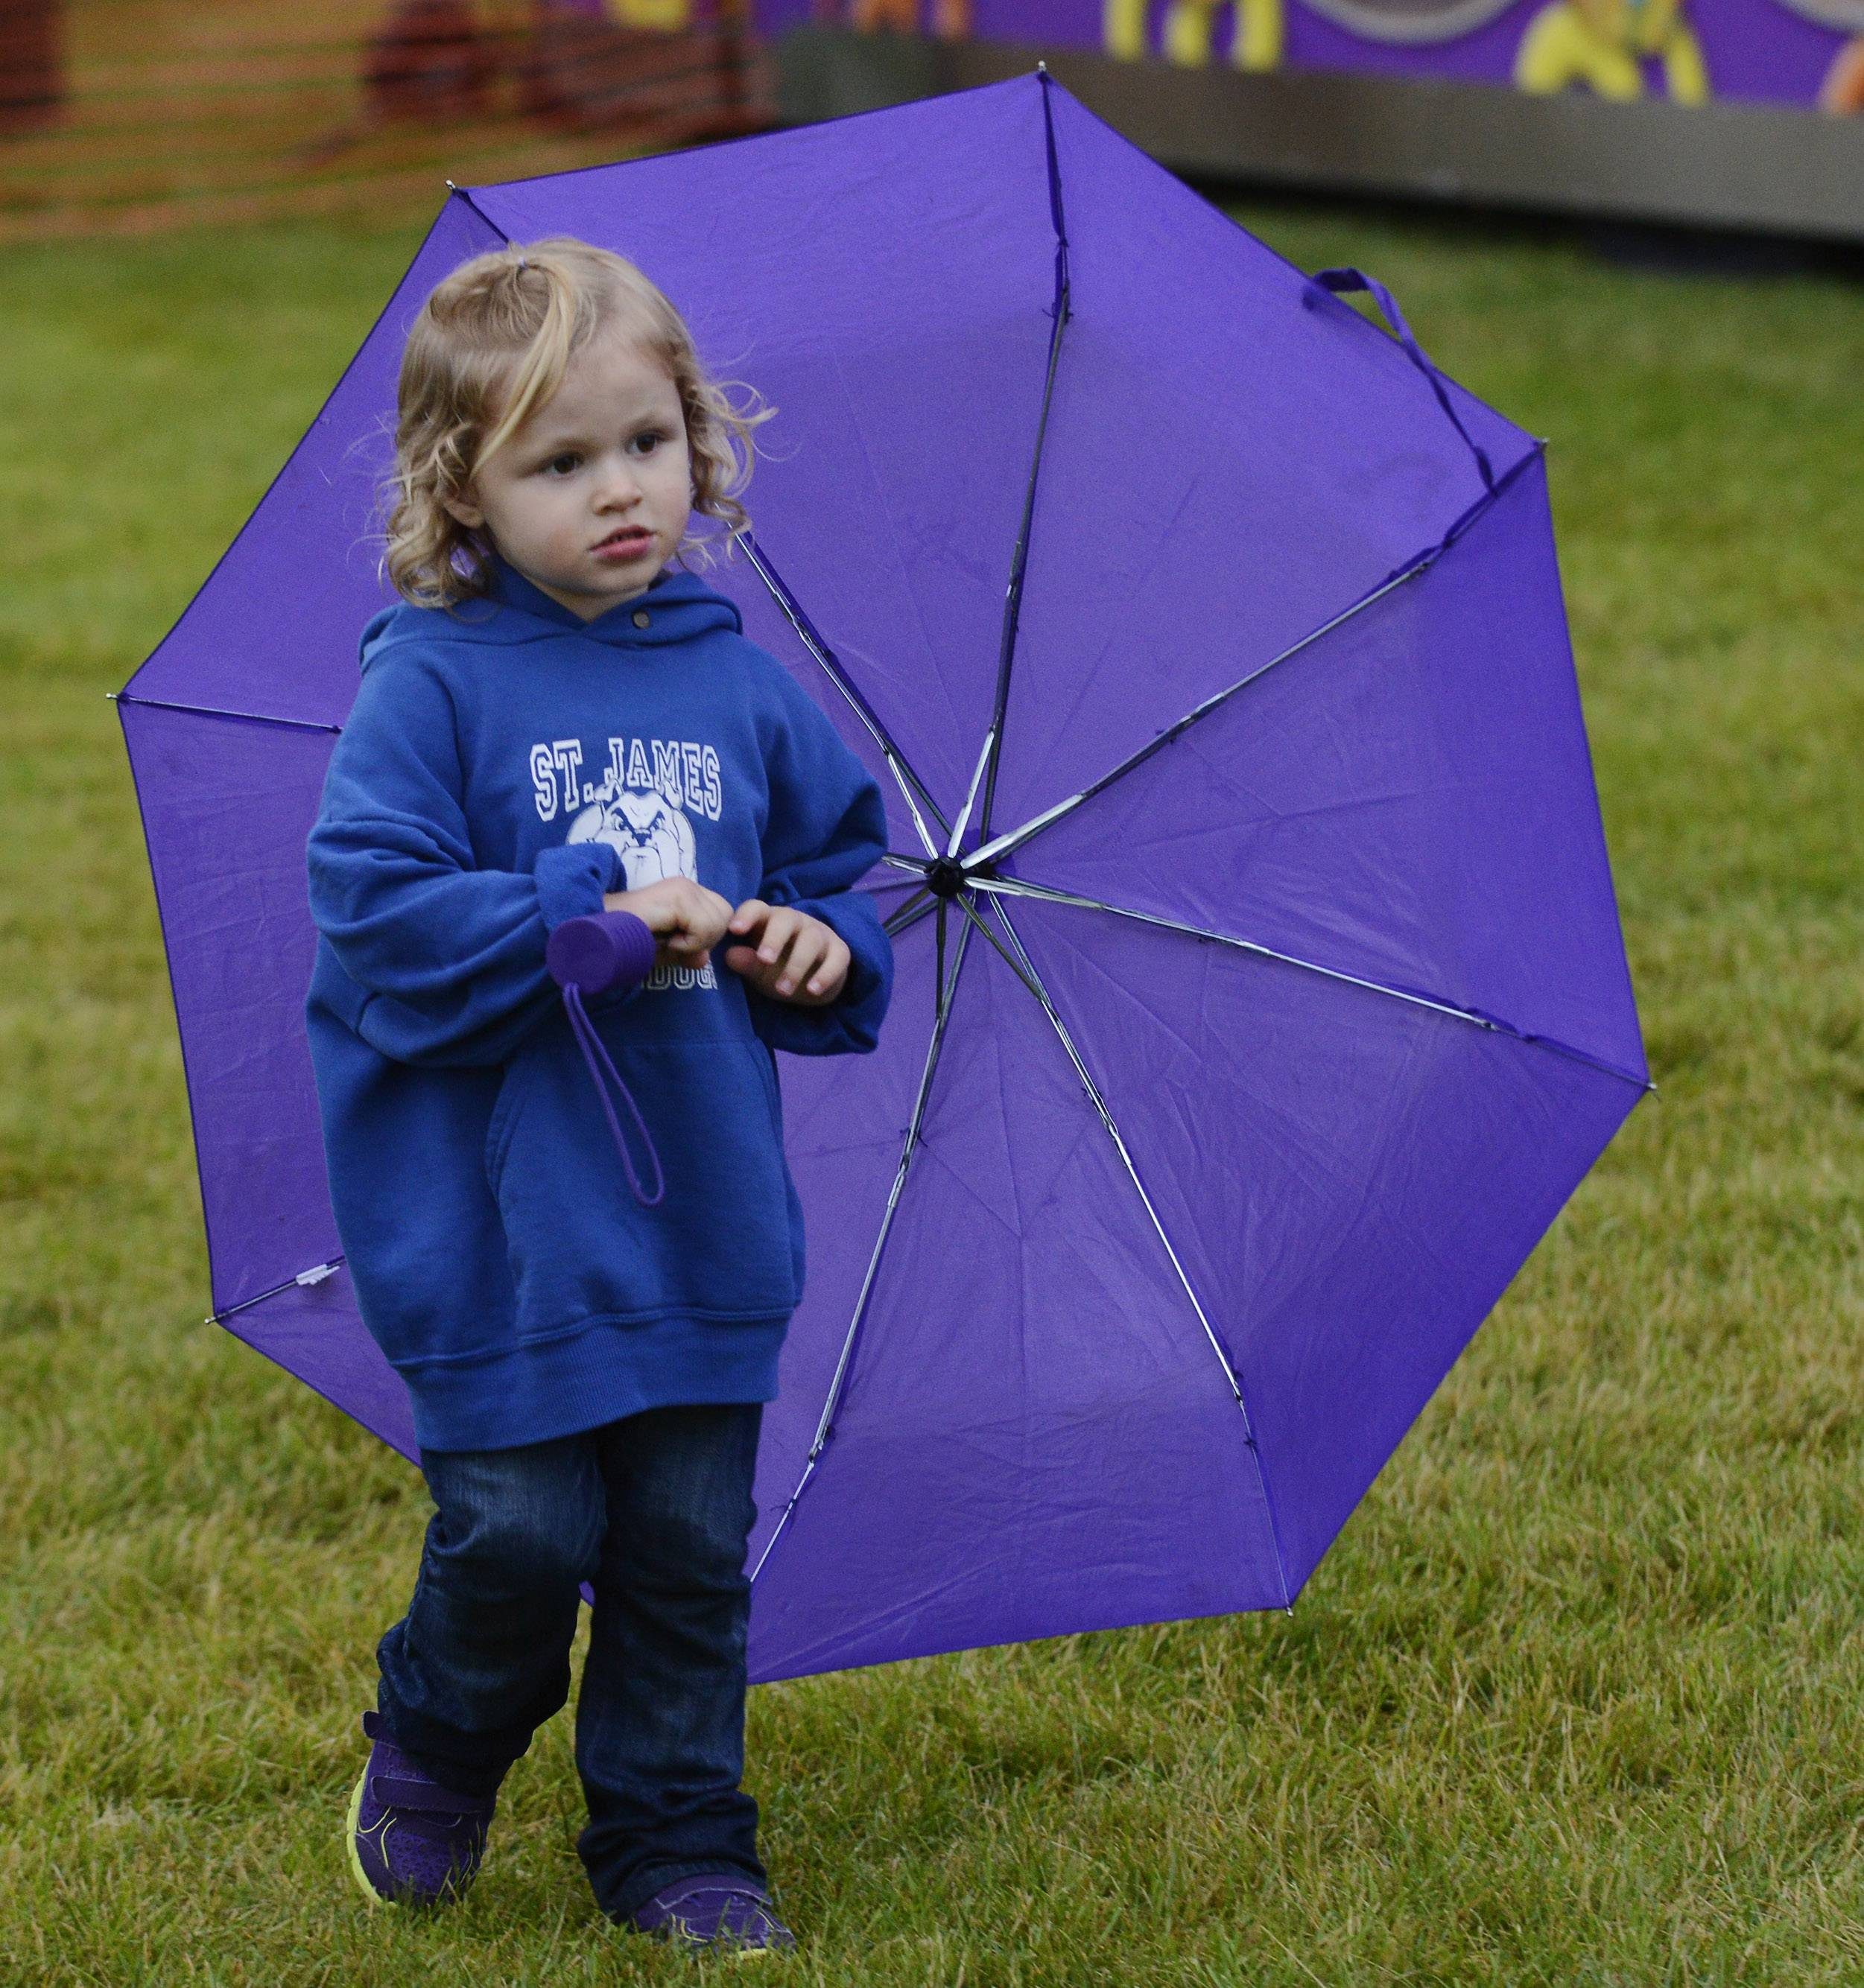 Elizabeth Flaherty, 2, of Arlington Heights, twirls an umbrella that matches her shoes as light rain falls on a 57-degree July evening on the opening night of Frontier Days in Arlington Heights.